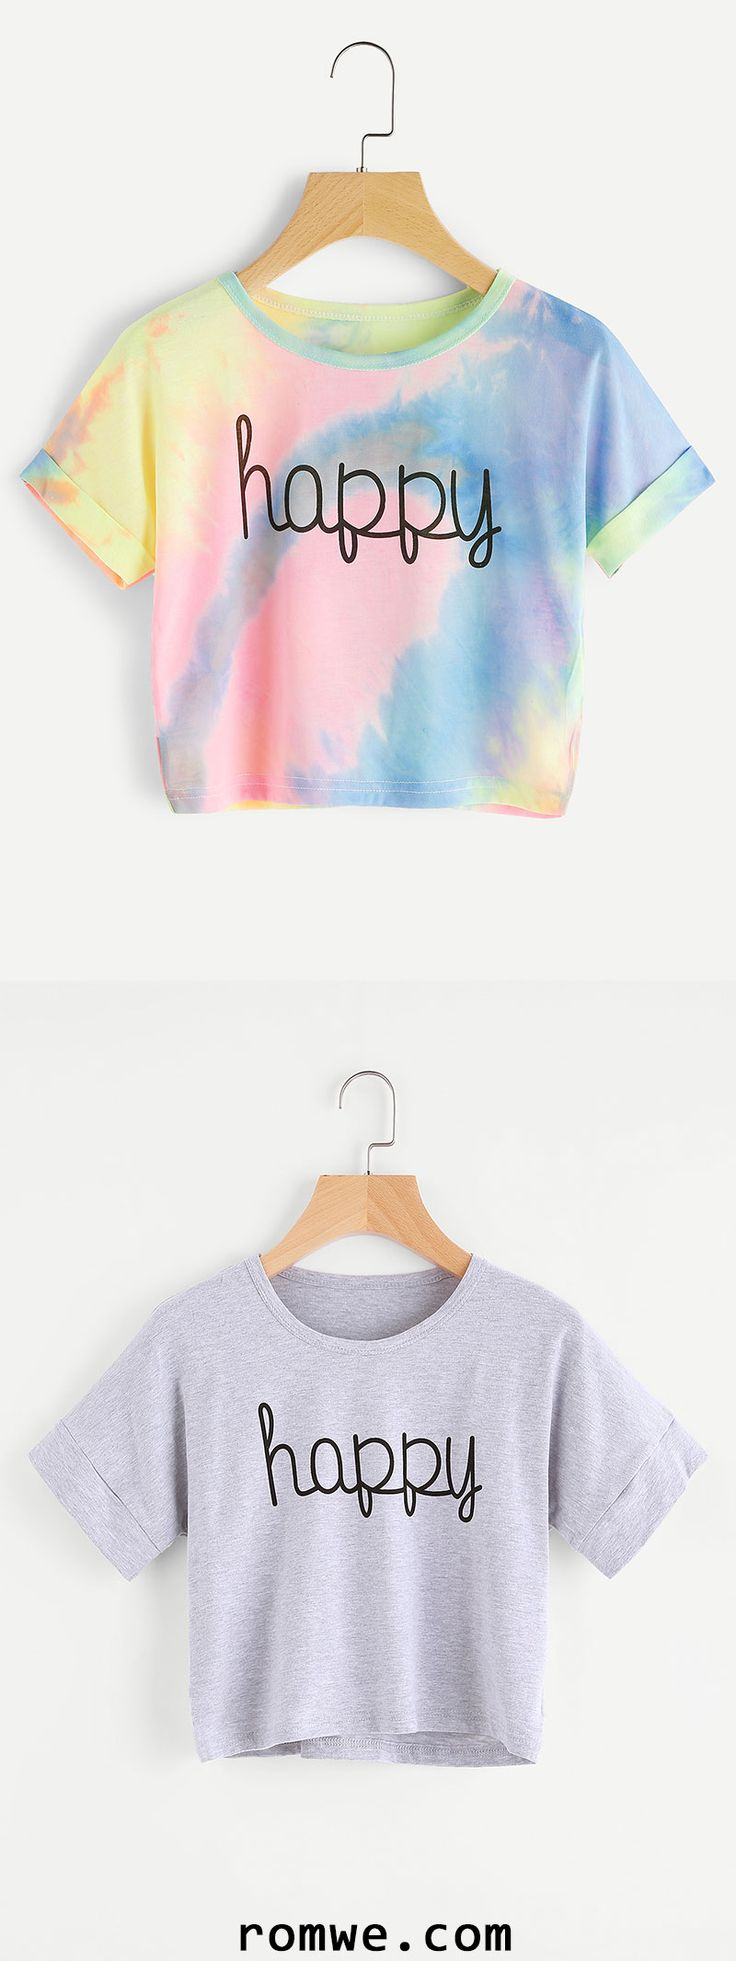 best shirts images on pinterest t shirts elephants and shell tops